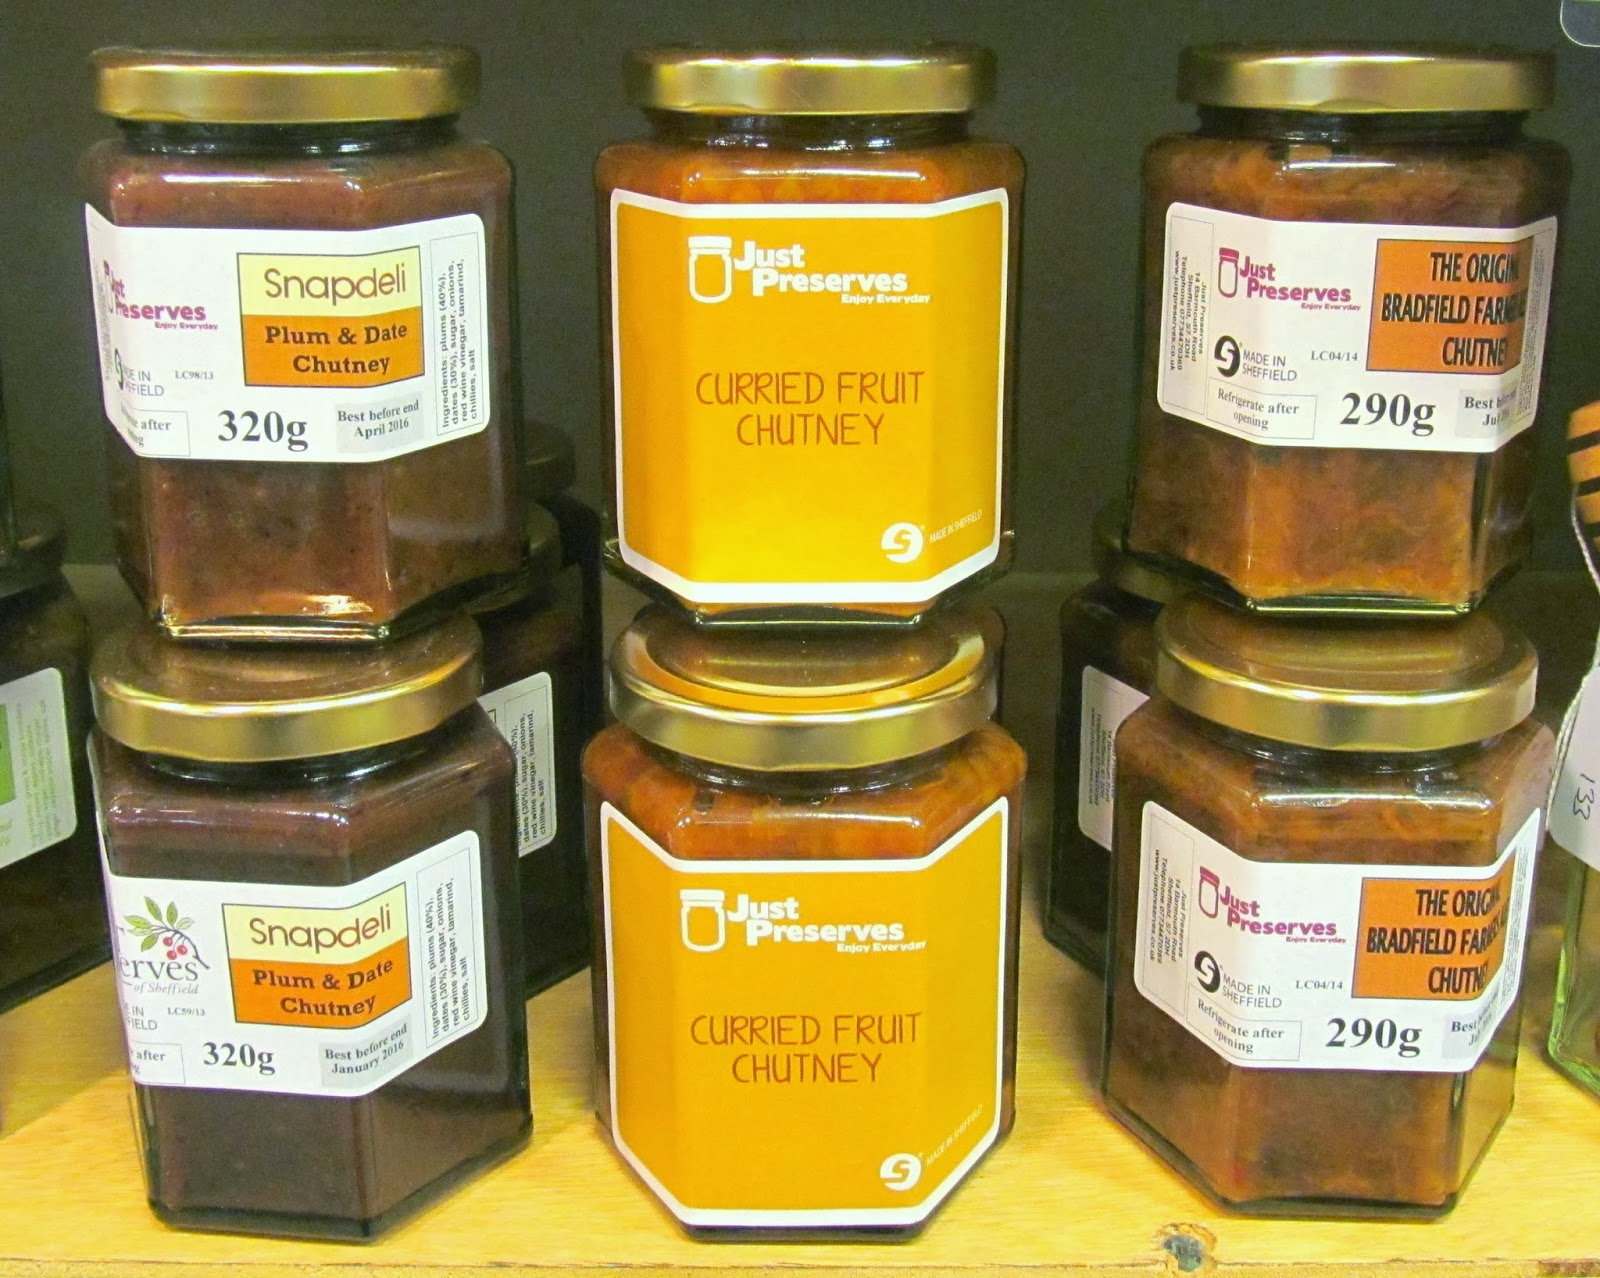 Chutneys by Just Preserves at Bird's Yard, Sheffield